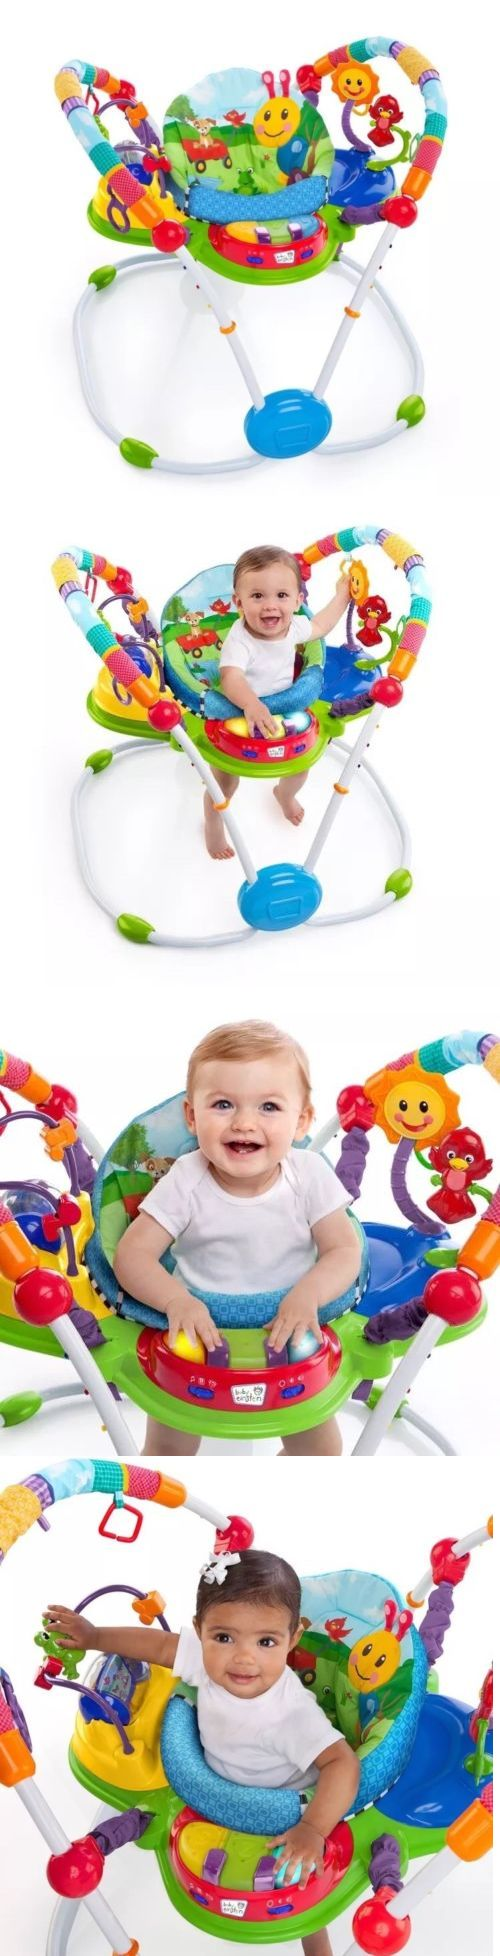 Baby Jumping Exercisers 117032: Baby Einstein Activity Jumper Special Edition, Neighborhood Friends -> BUY IT NOW ONLY: $76.99 on eBay!